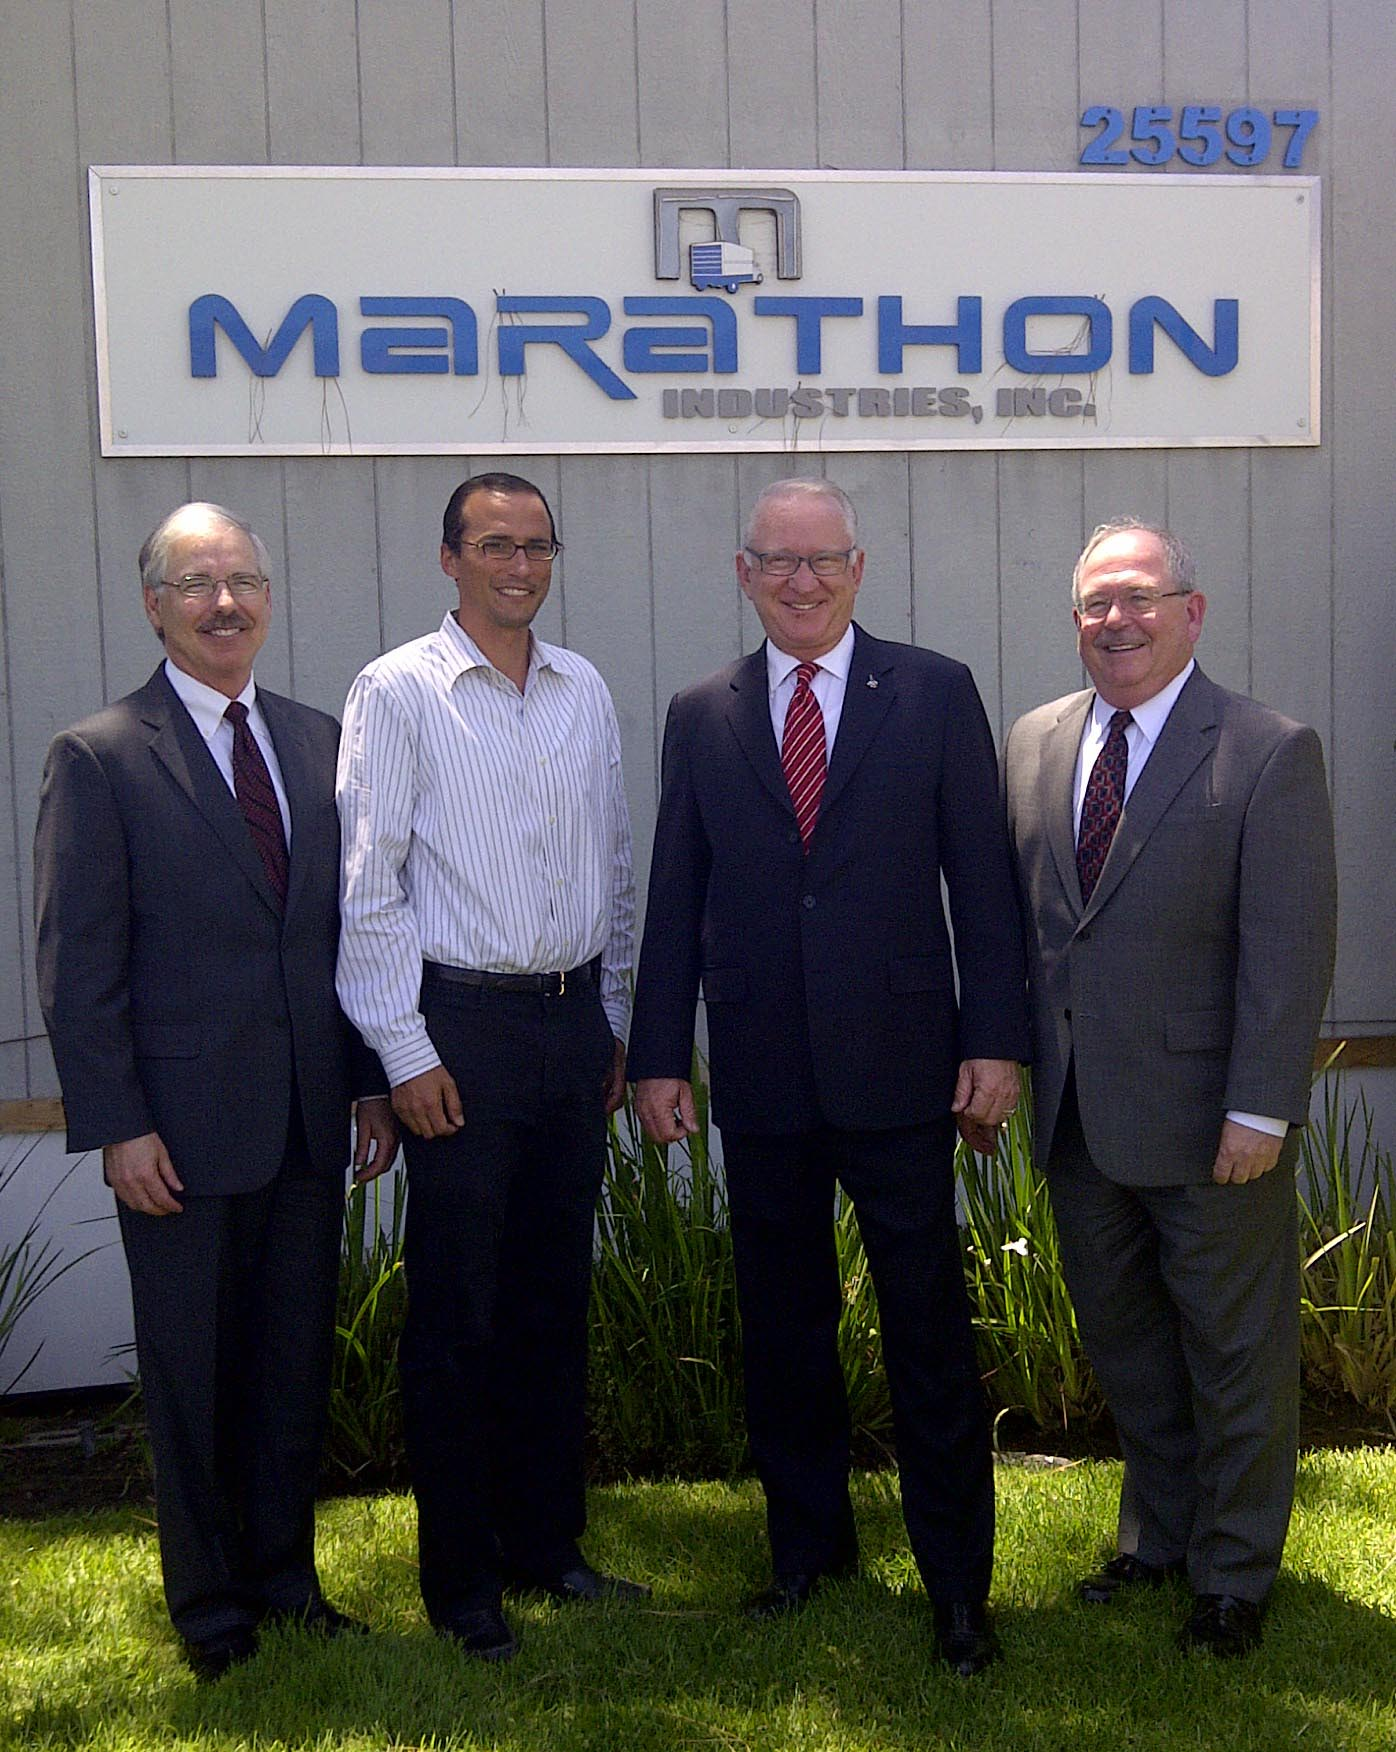 Congressman McKeon Marathon Industries newspage cropped